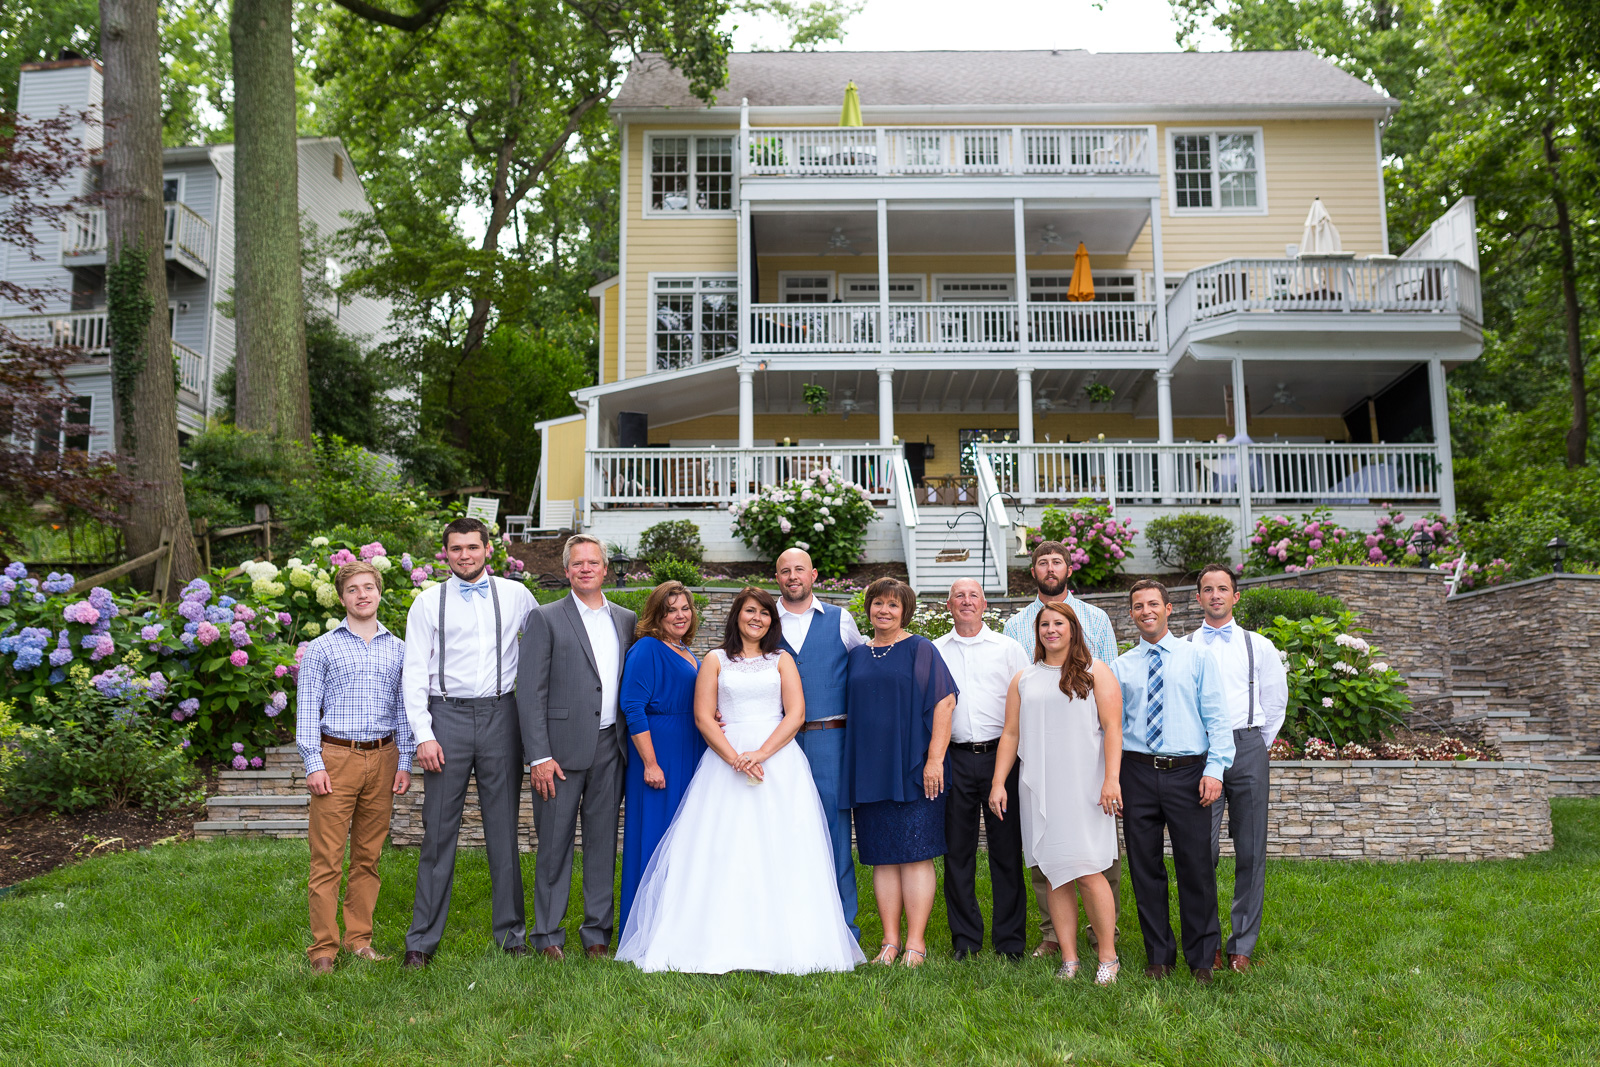 Vacation House Wedding